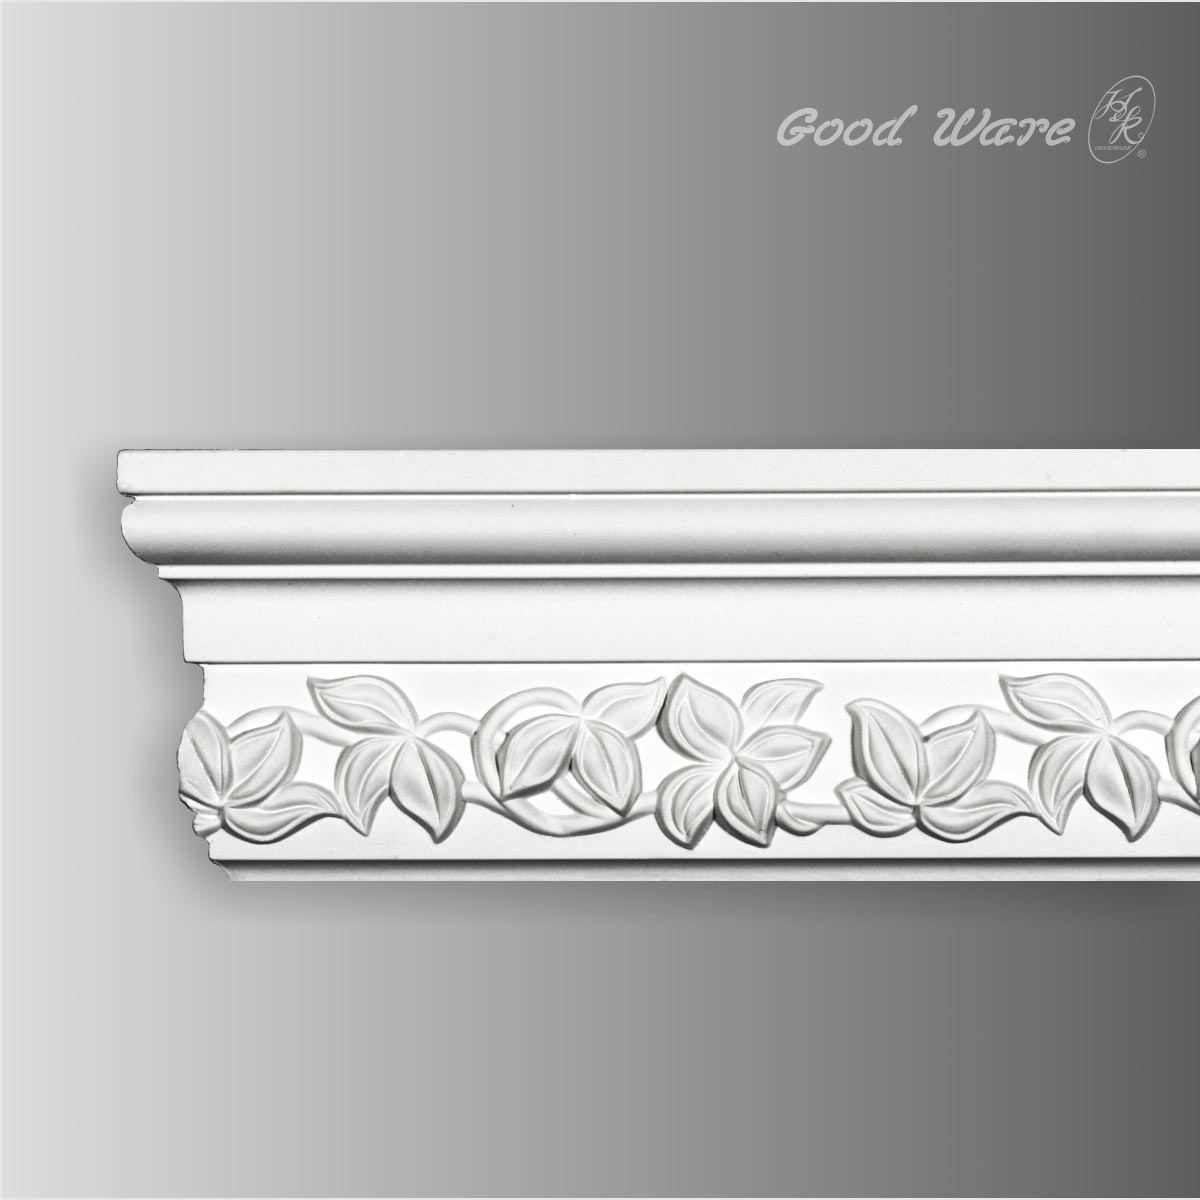 Polyurethane chair rail mouldings